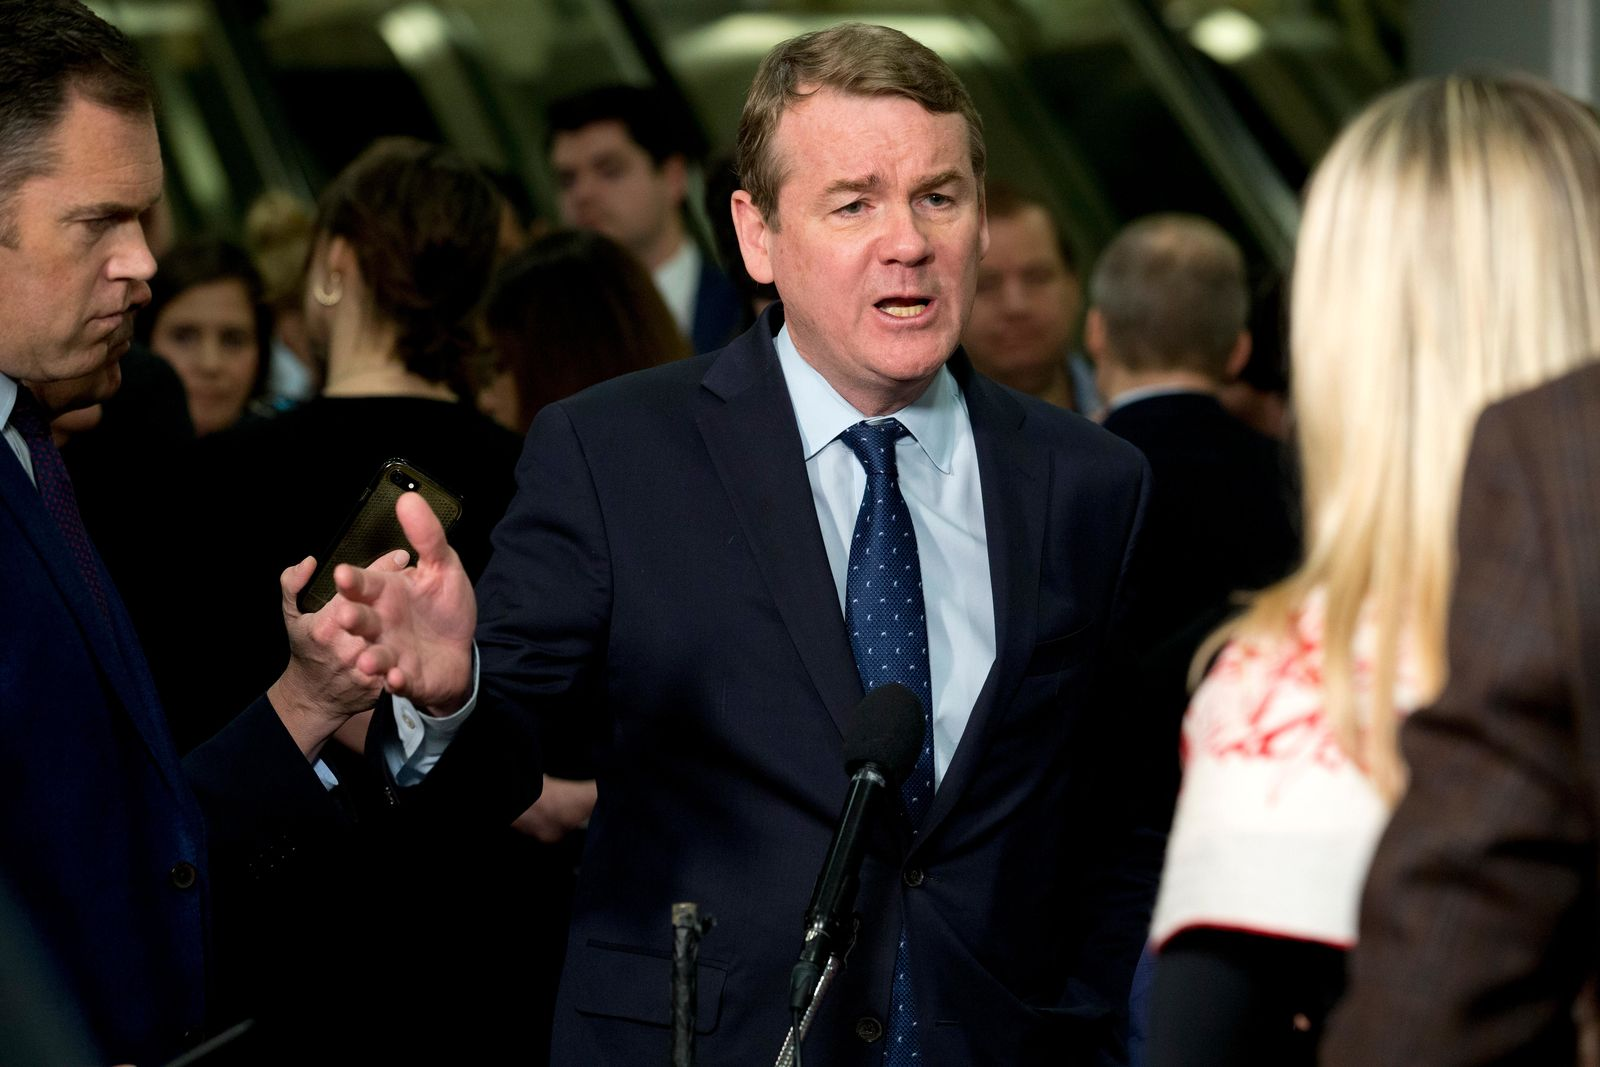 Sen. Michael Bennet, D-Colo., speaks to the media on Capitol Hill in Washington, Thursday, Jan. 23, 2020. (AP Photo/Jose Luis Magana)